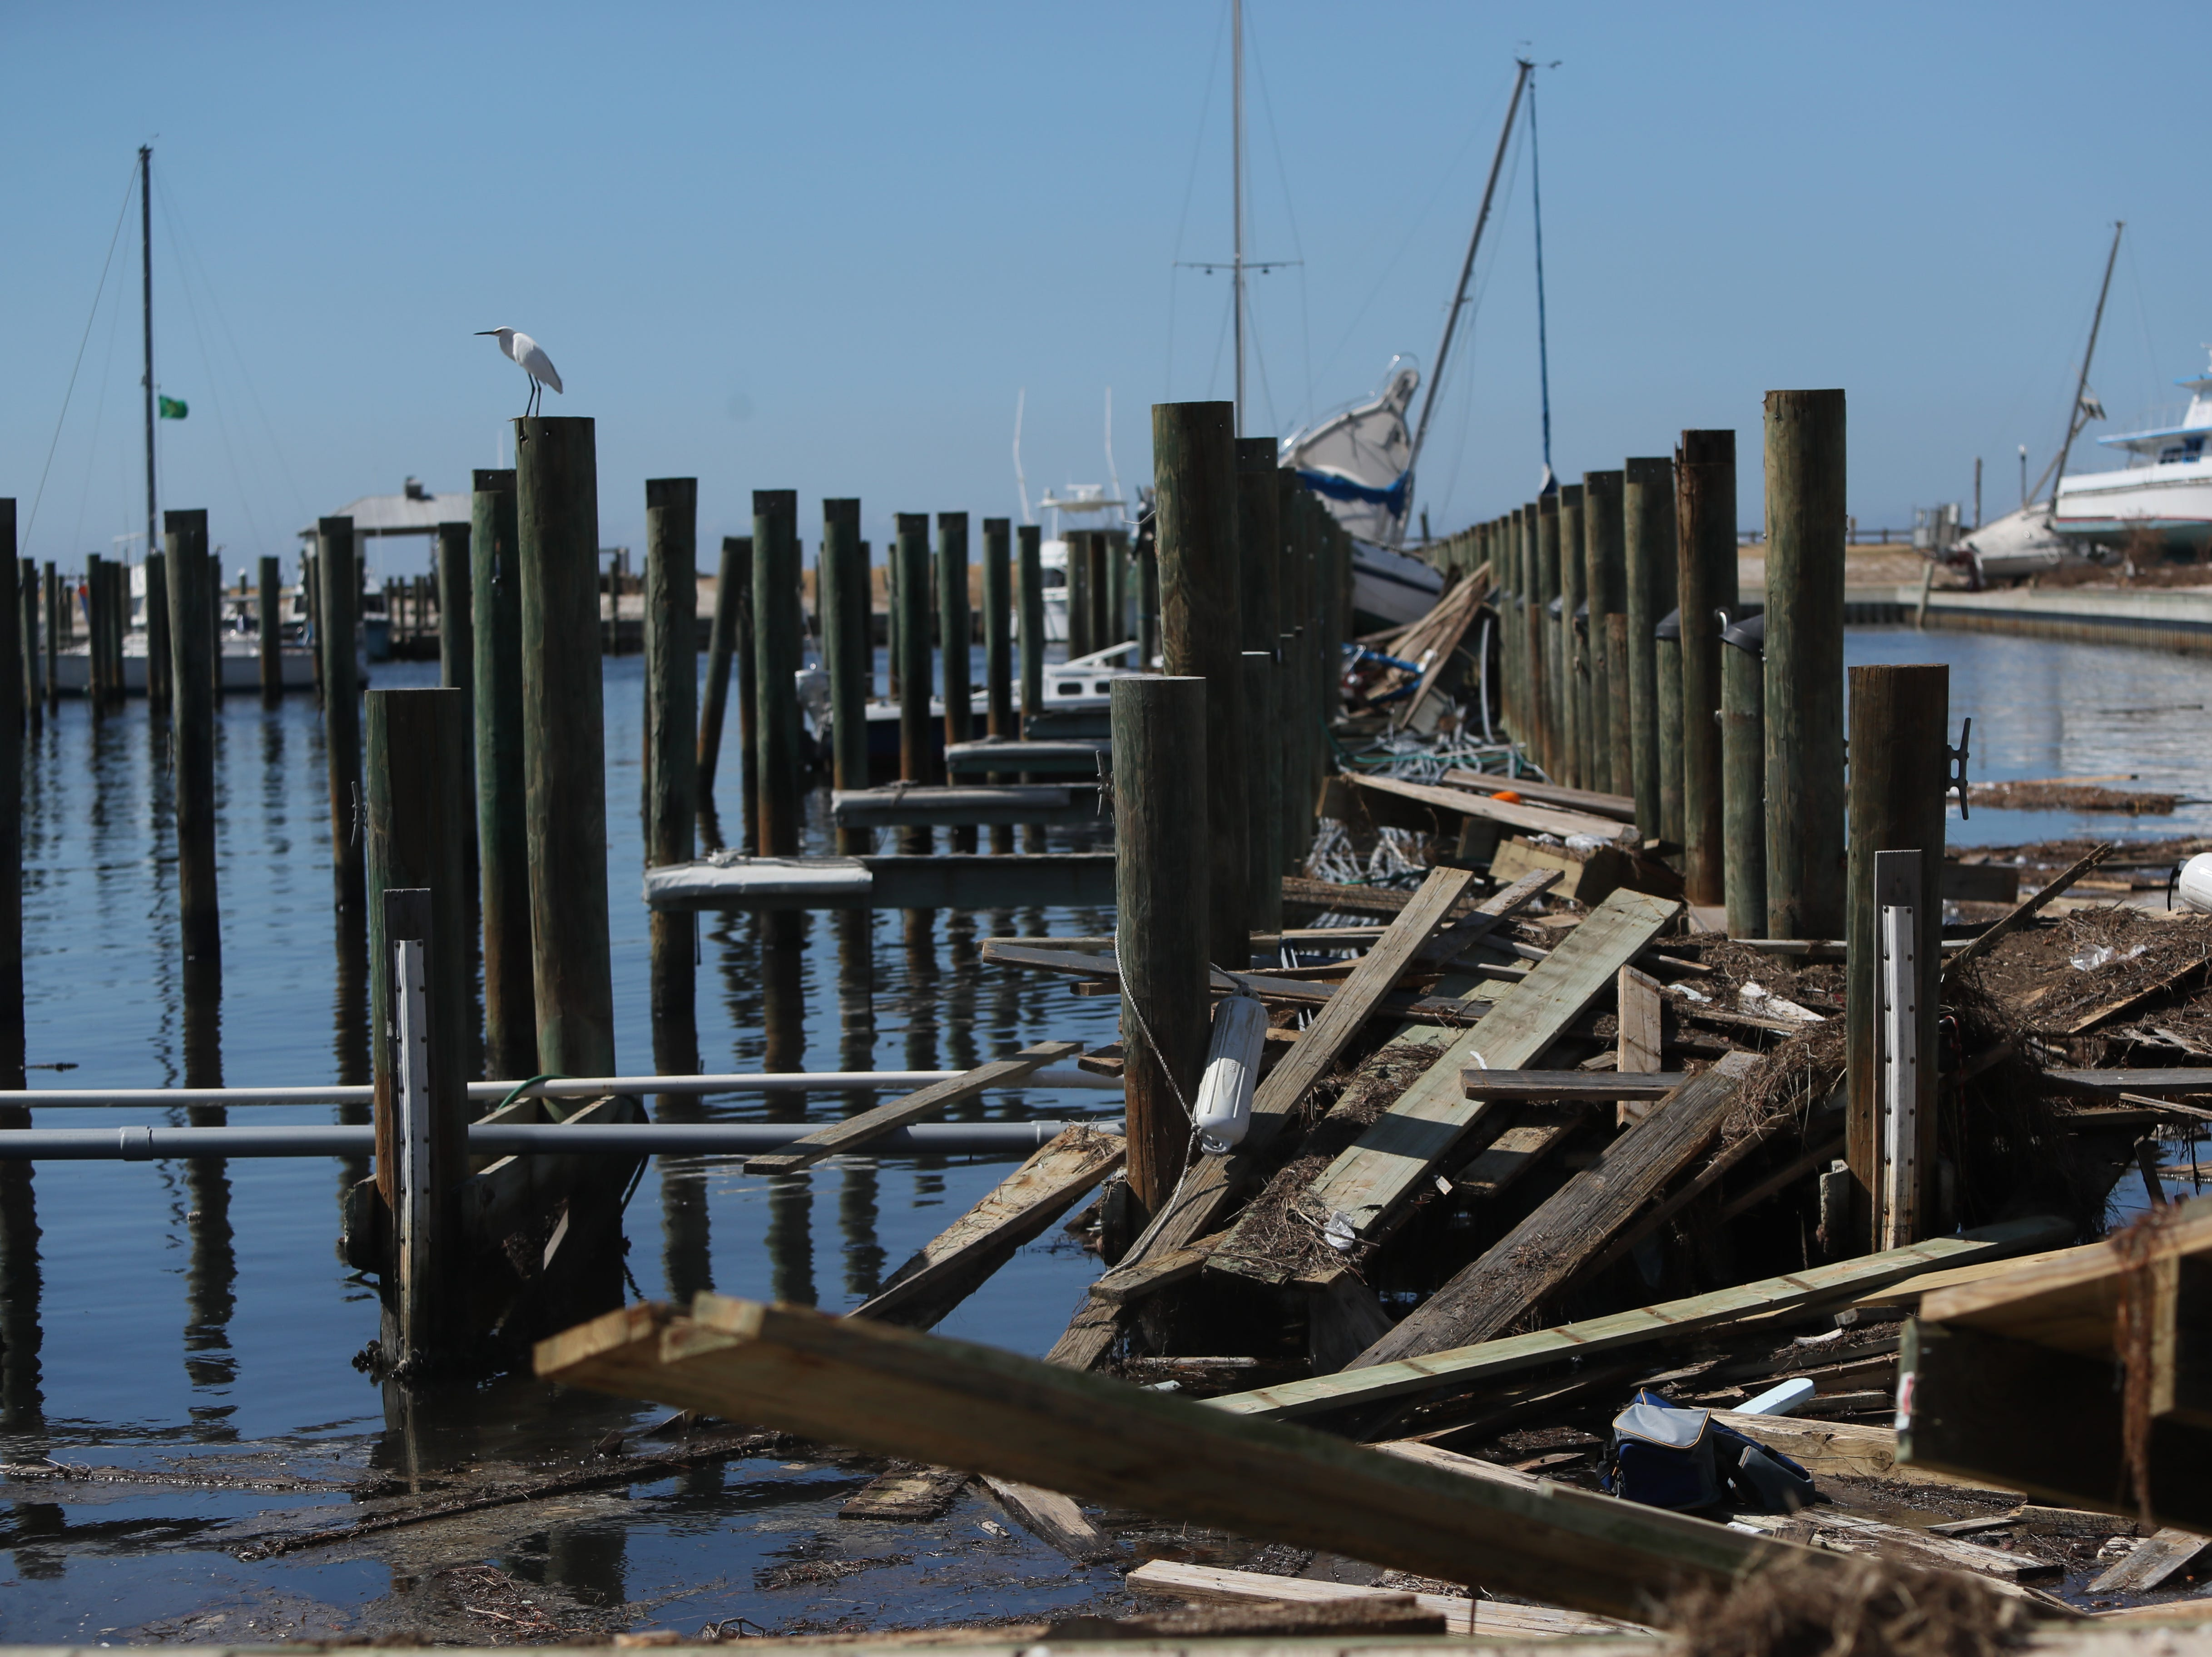 Boats are twisted, docks shattered Tuesday in the Port St. Joe marina after Hurricane Michael blasted the region.